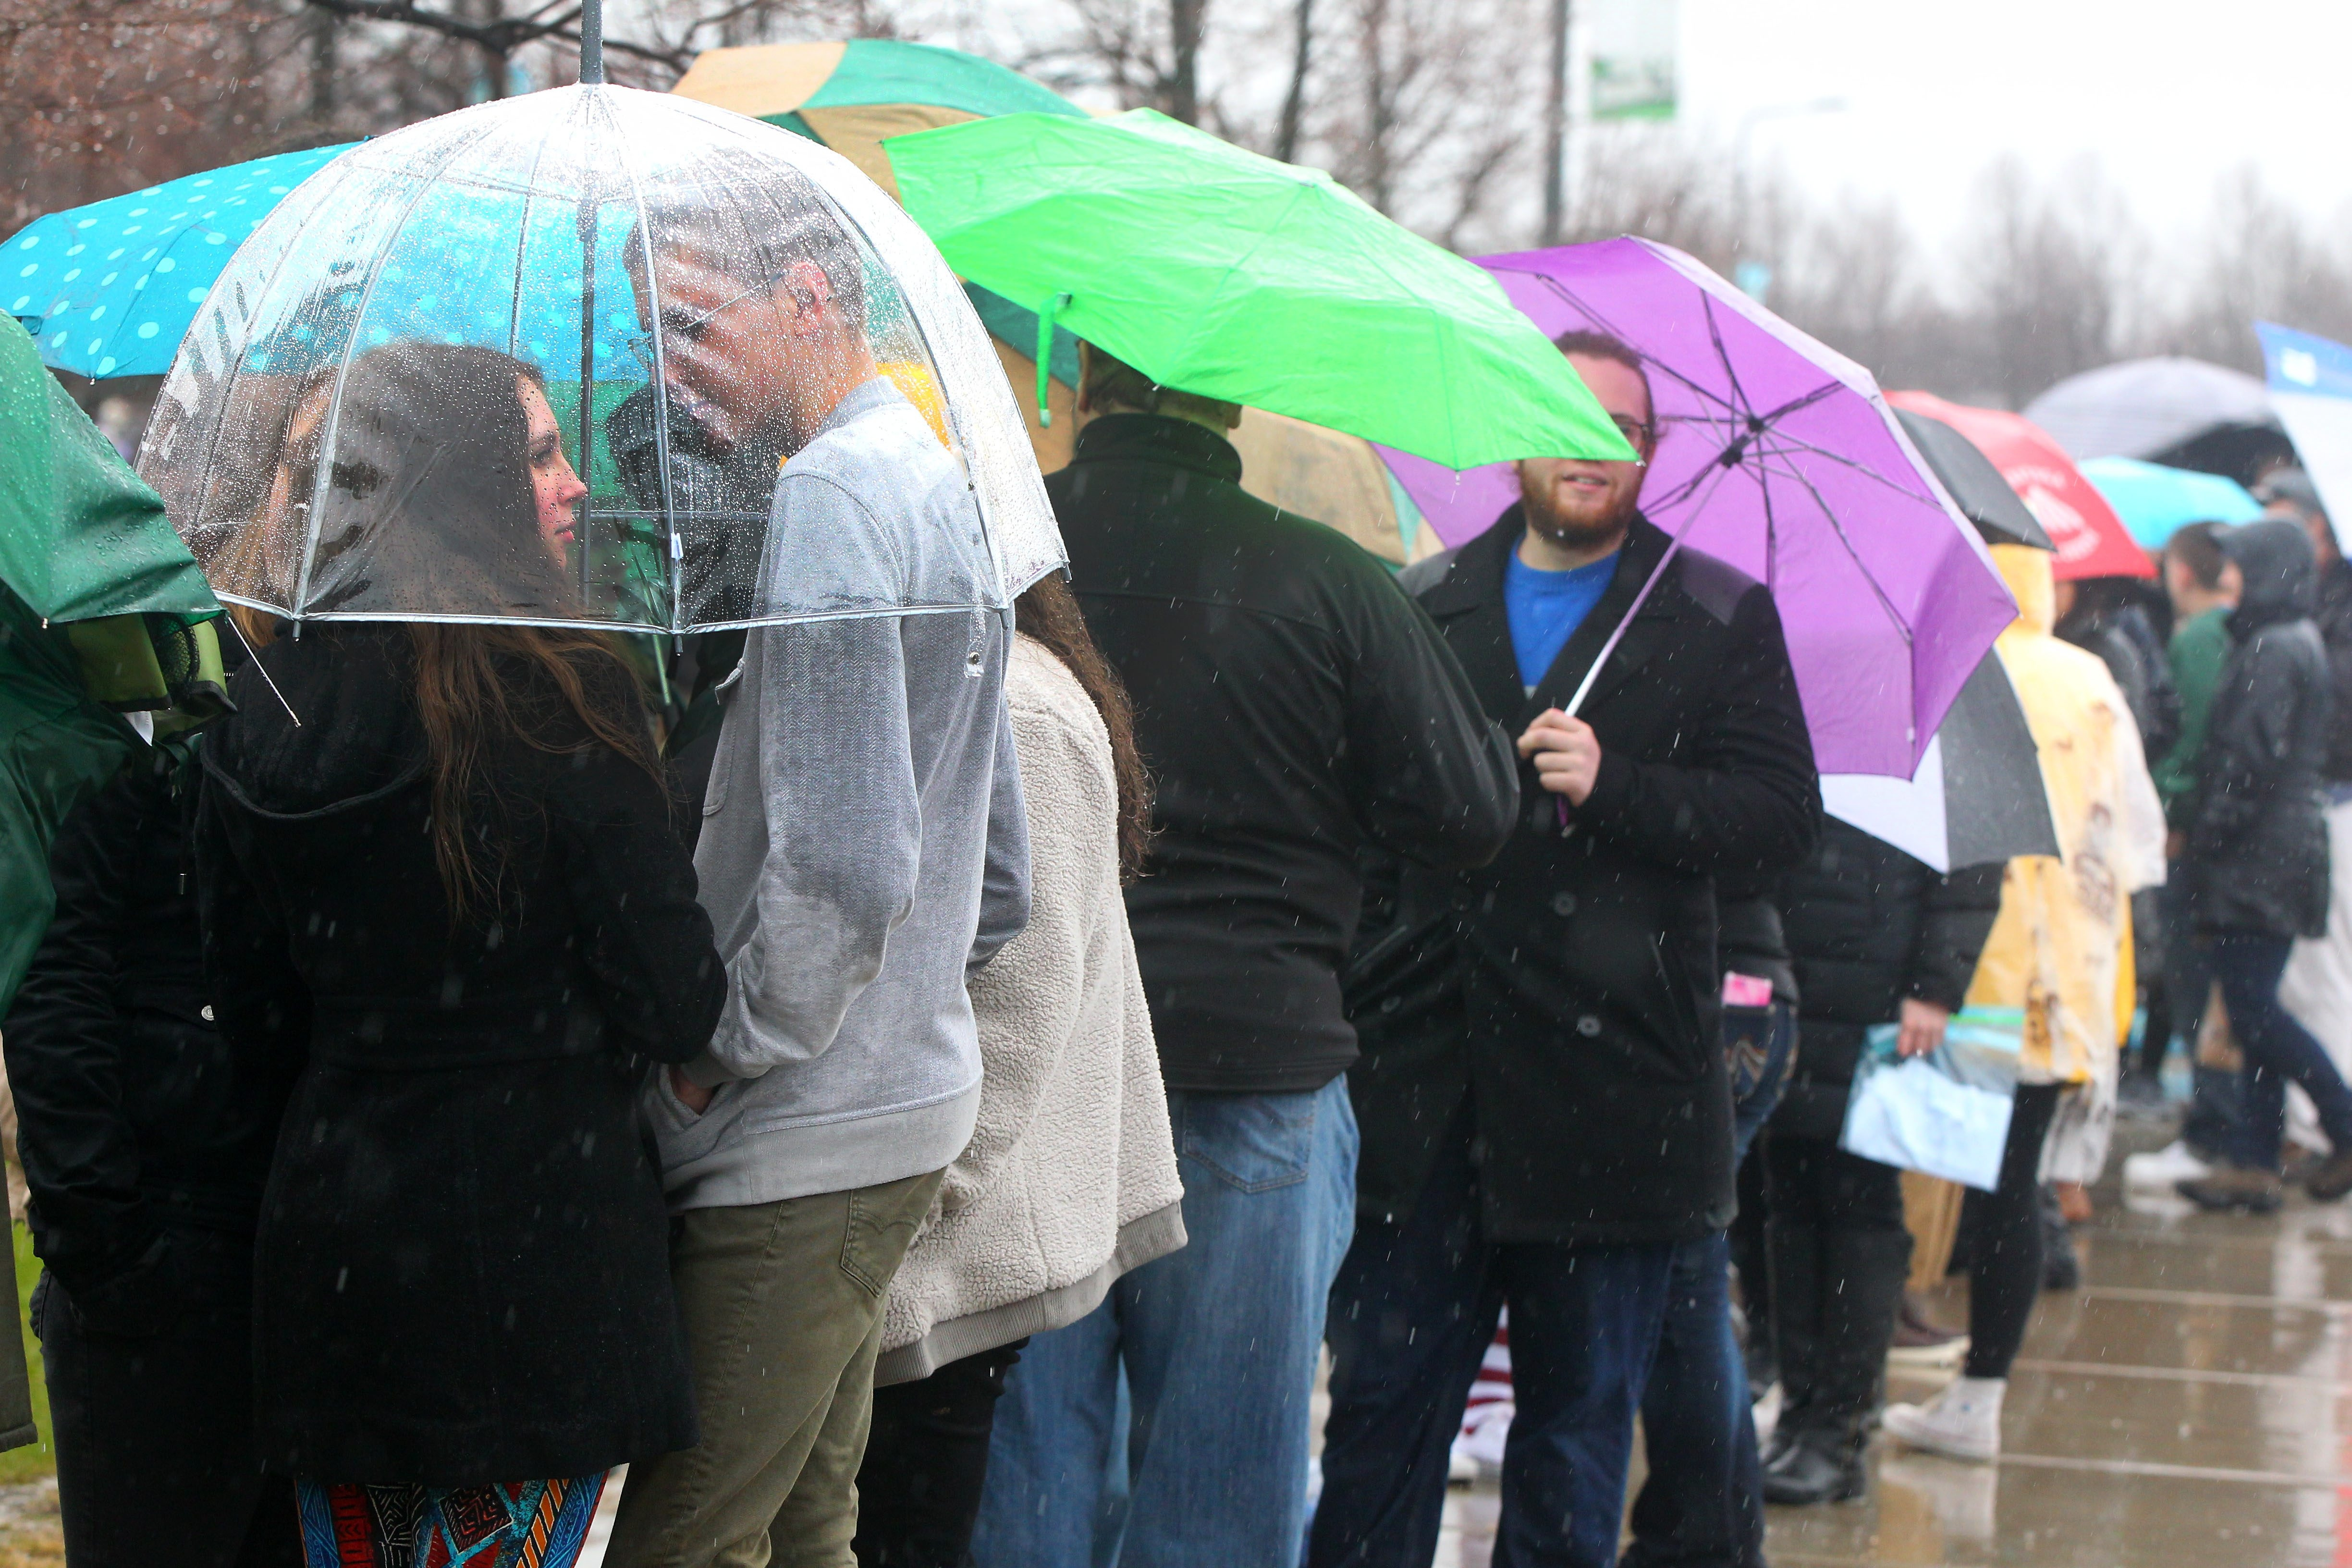 The primaries have generated intense interest among voters, including these who stood in line for hours in the rain to get into Bernie Sanders' event Monday at the University at Buffalo. (Mark Mulville/Buffalo News)